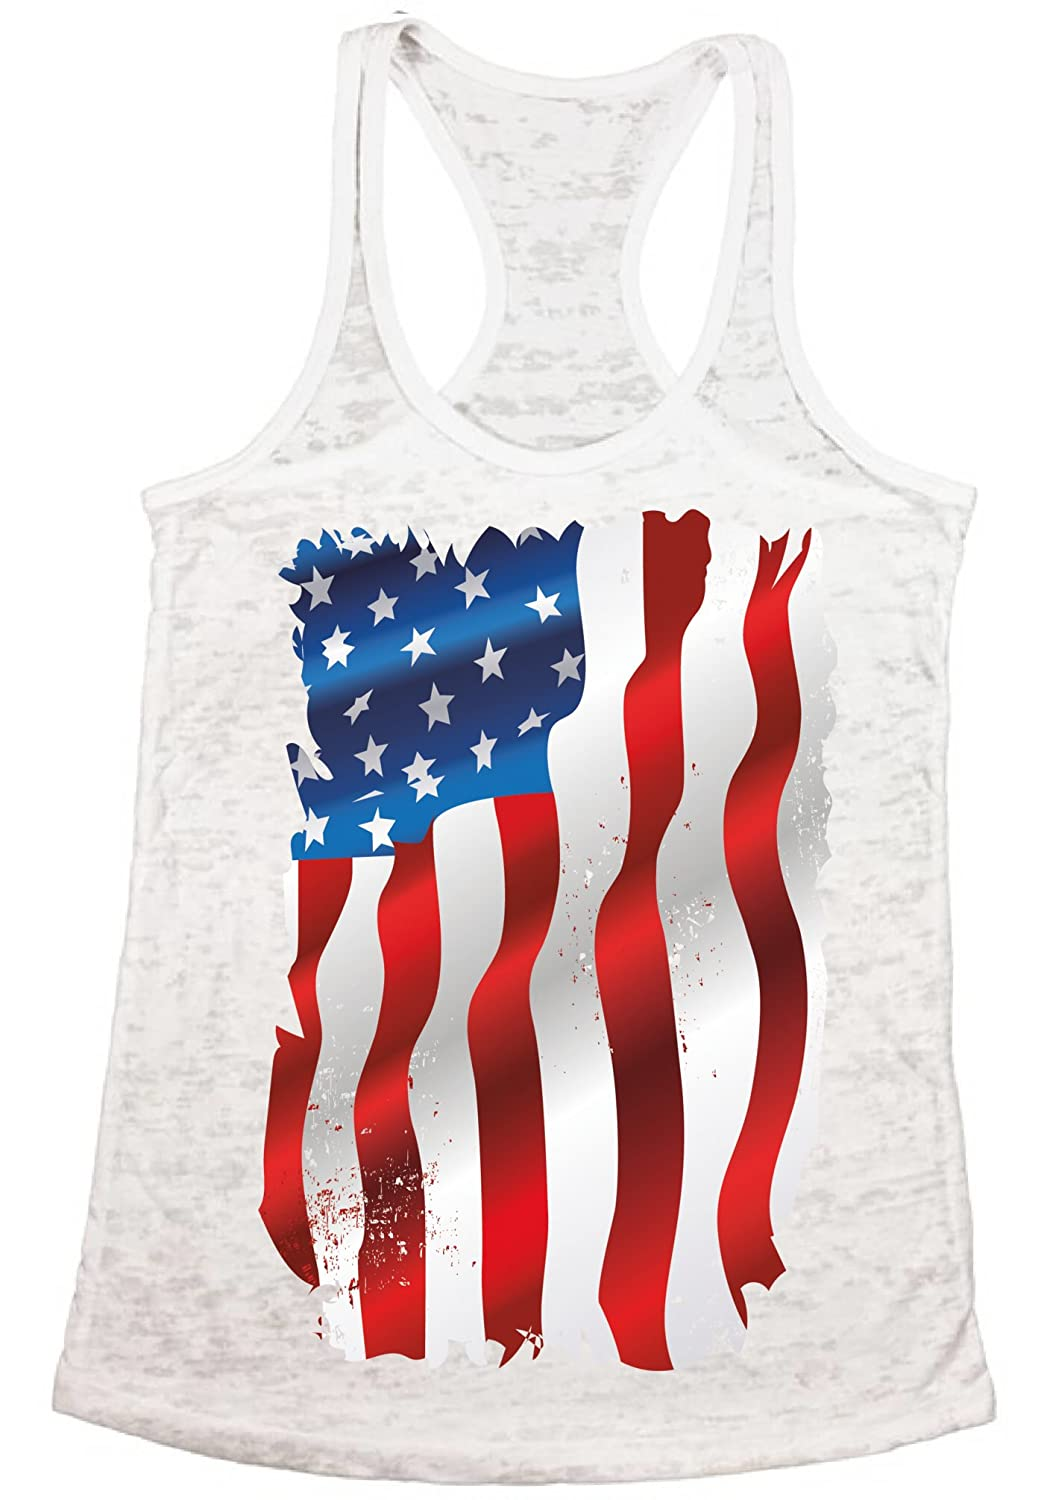 f21b90cd533 Celebrate your patriotic feelings with Burnout Tank Tops on the  Independence Day. This distressed flag logo Burnout Tank Tops is great for  a Fourth of July ...